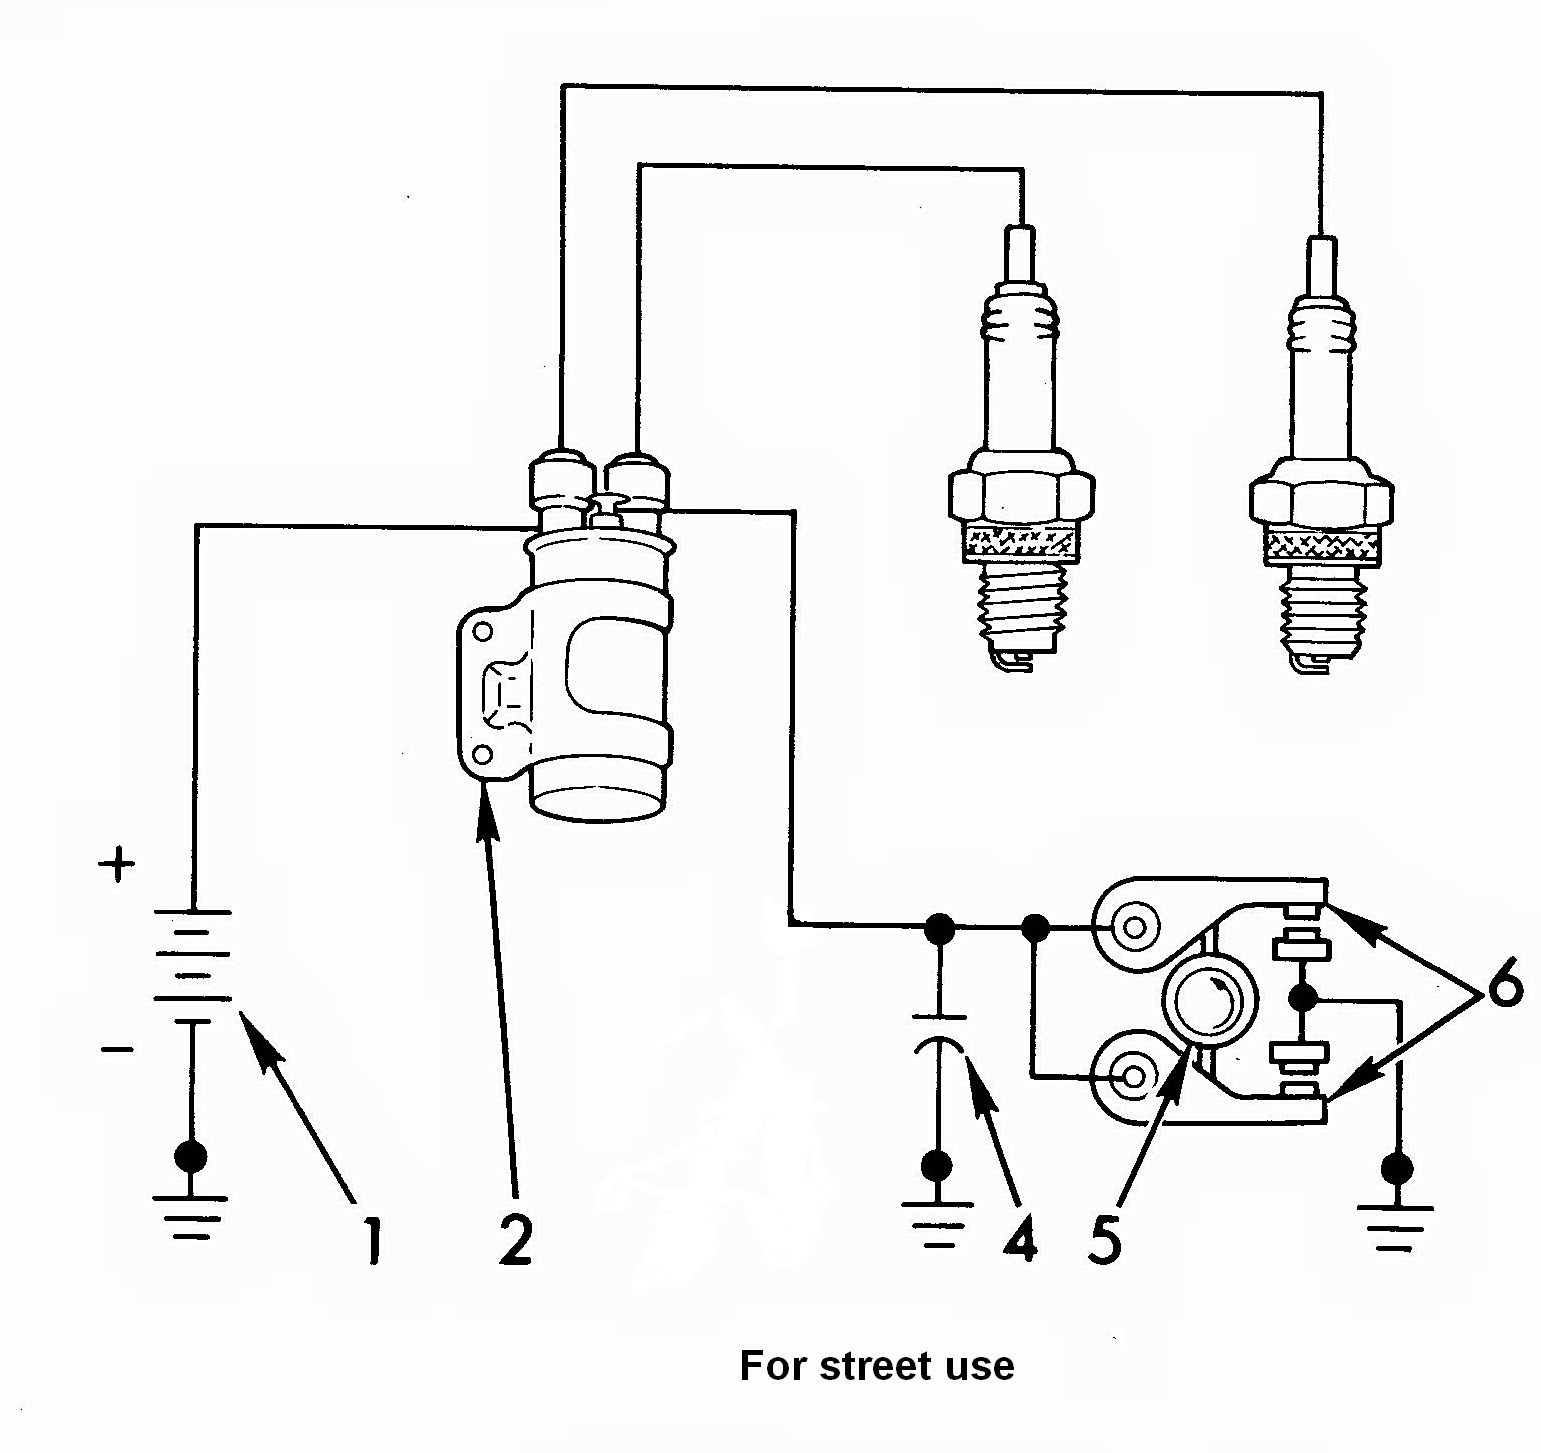 [DIAGRAM] Mallory Electronic Ignition Coil Wire Diagram